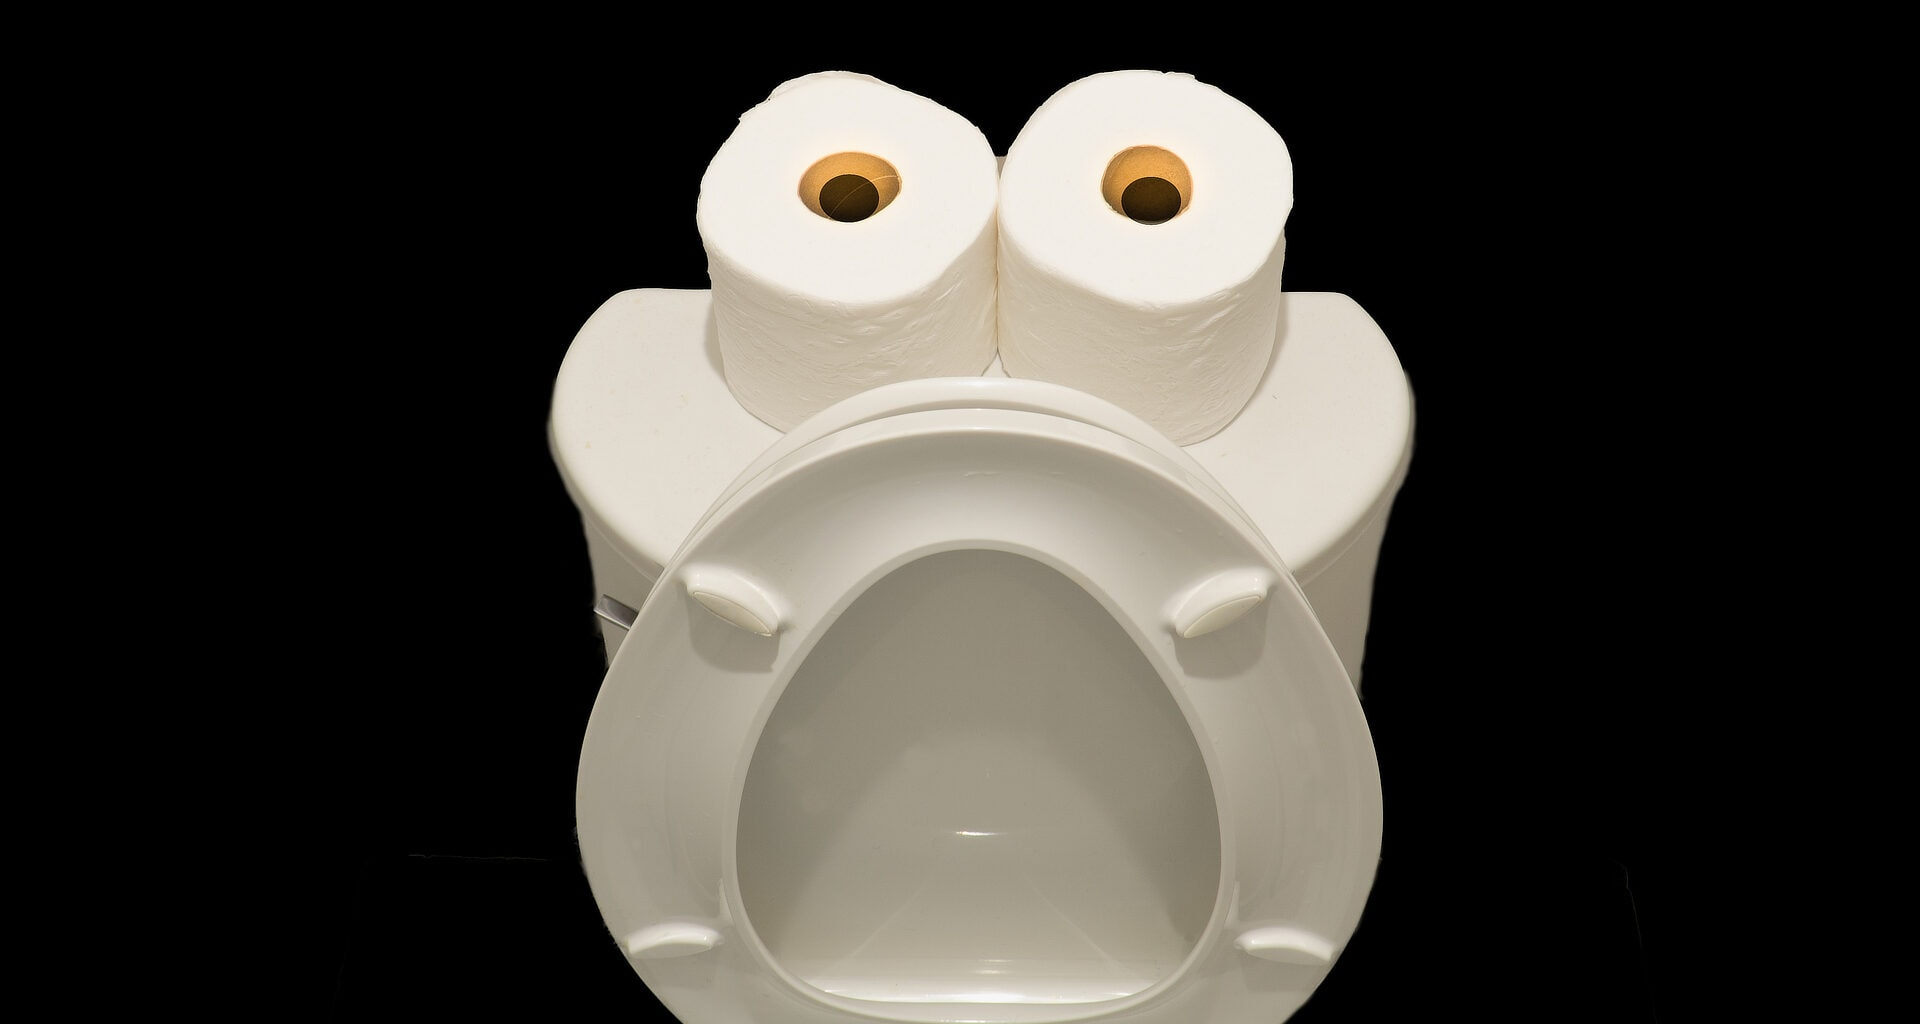 RV toilet paper - do you really need it?